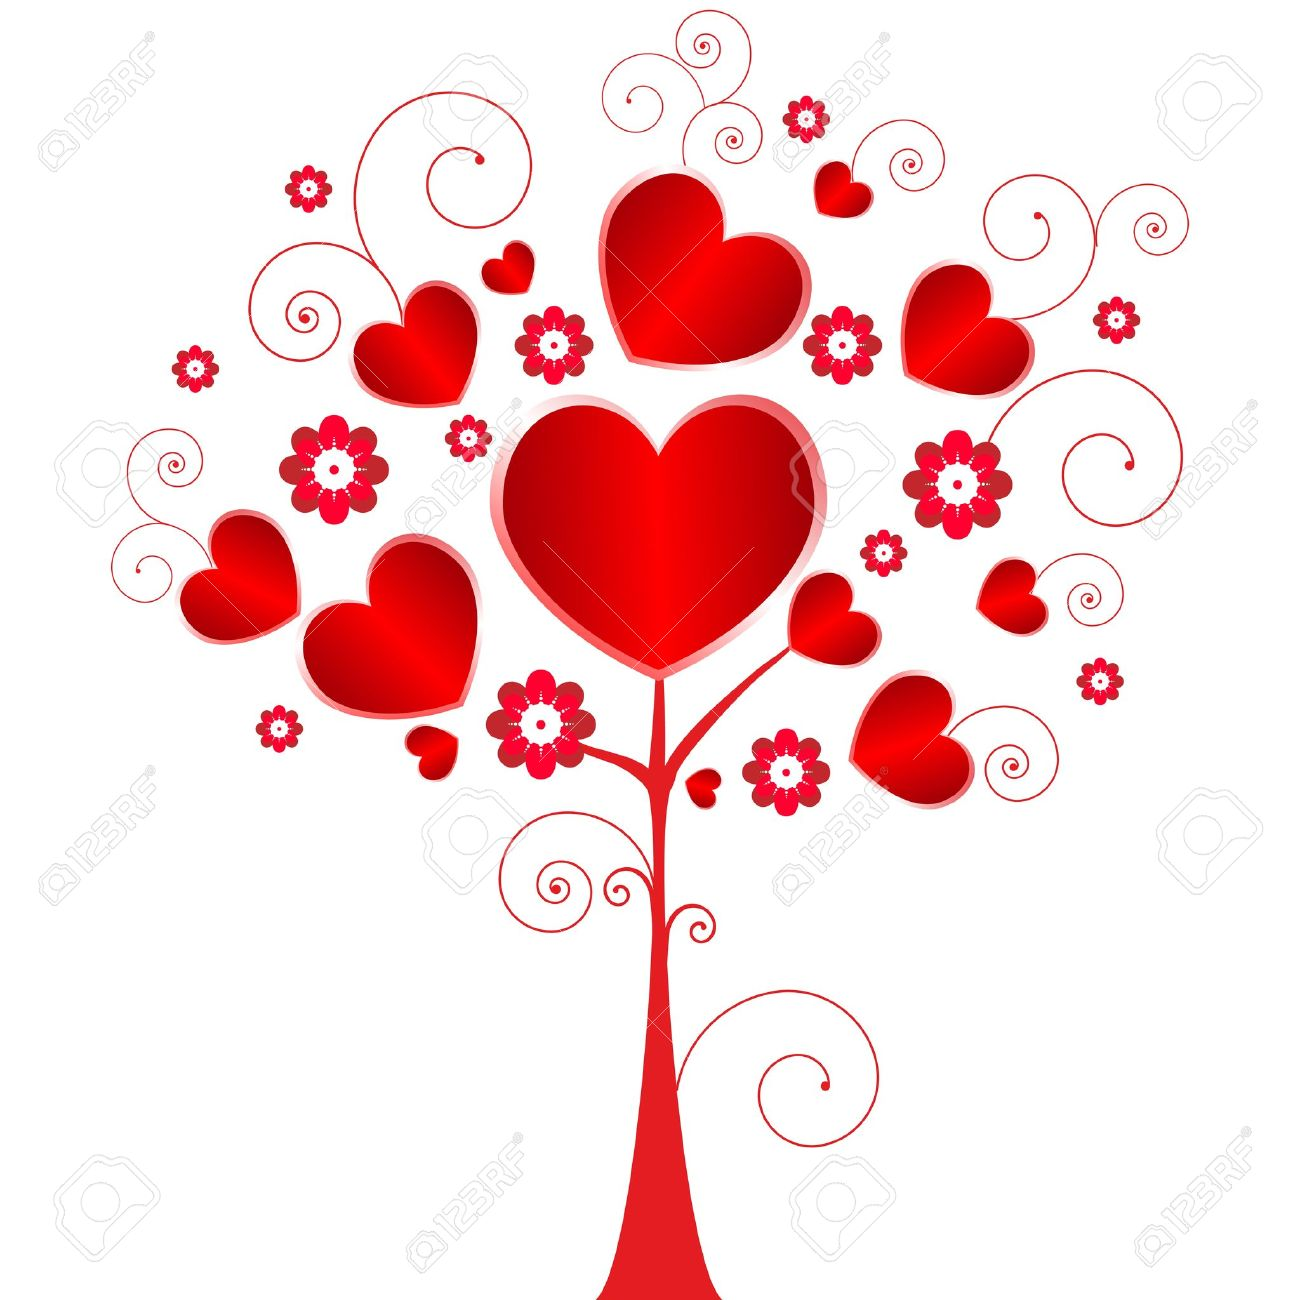 valentine day tree with flowers and hearts royalty free cliparts